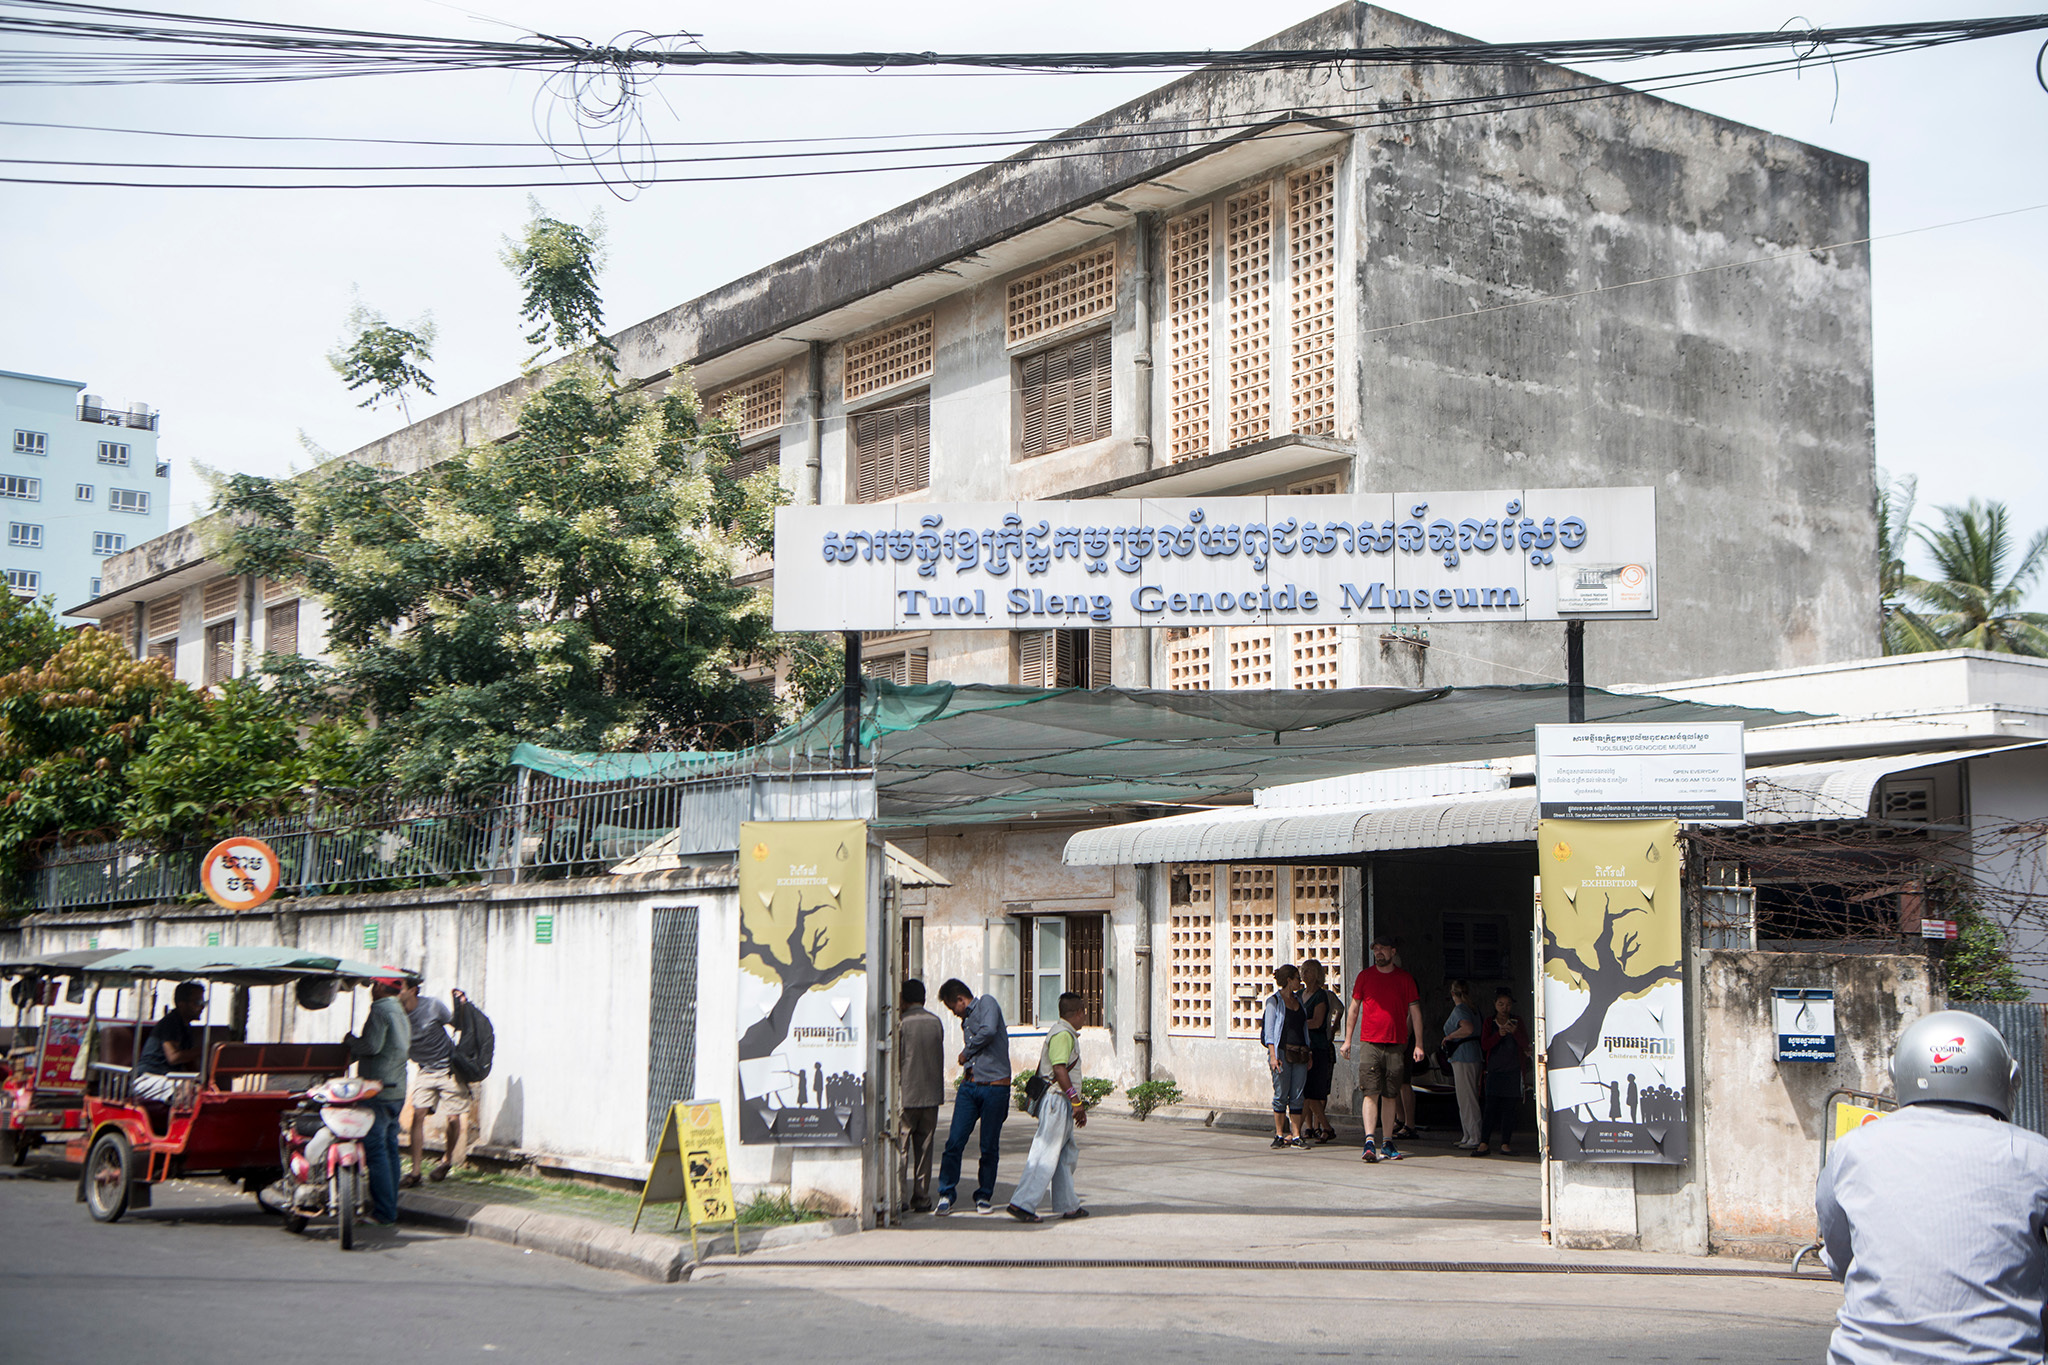 Tuol Sleng Genocide Museum, eitw